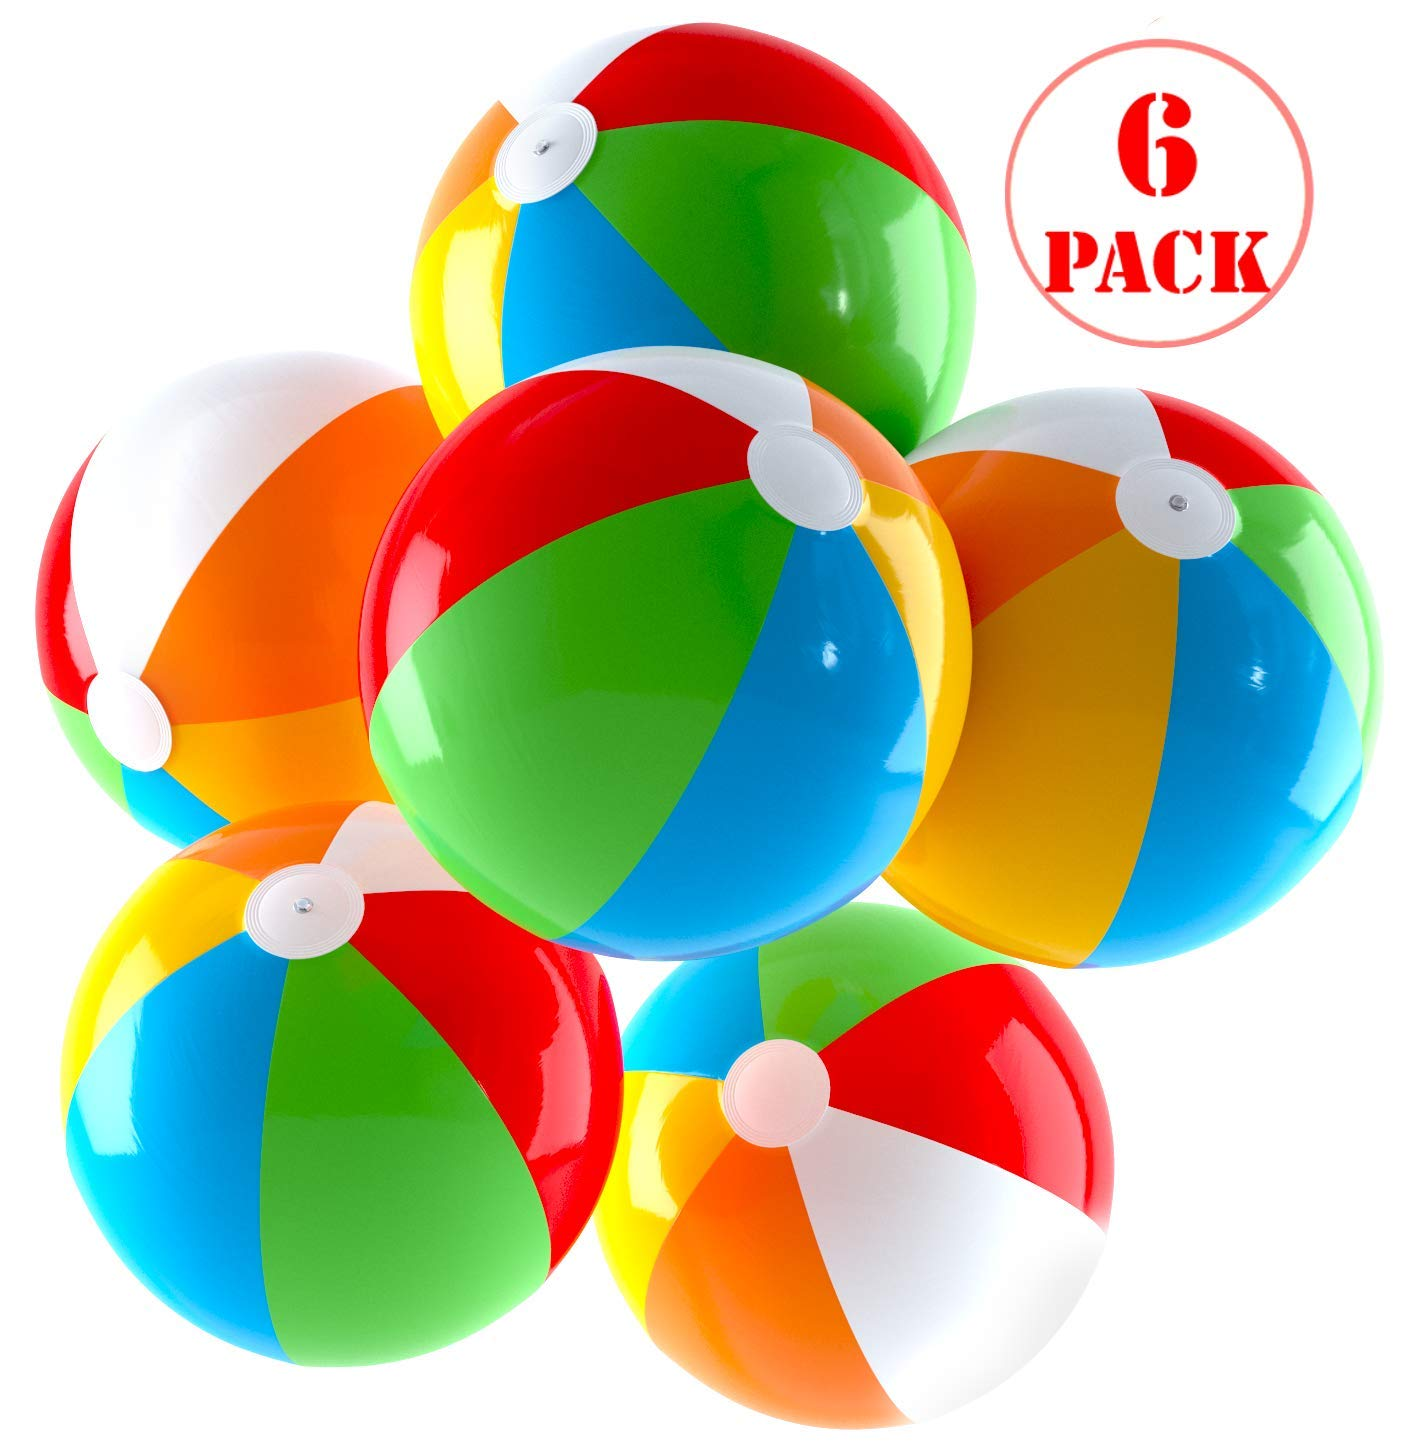 Inflatable Beach Balls Jumbo 24 inch for The Pool, Beach, Summer Parties, and Gifts | 6 Pack Blow up Rainbow Color Beach Ball (6 Balls) by Top Race